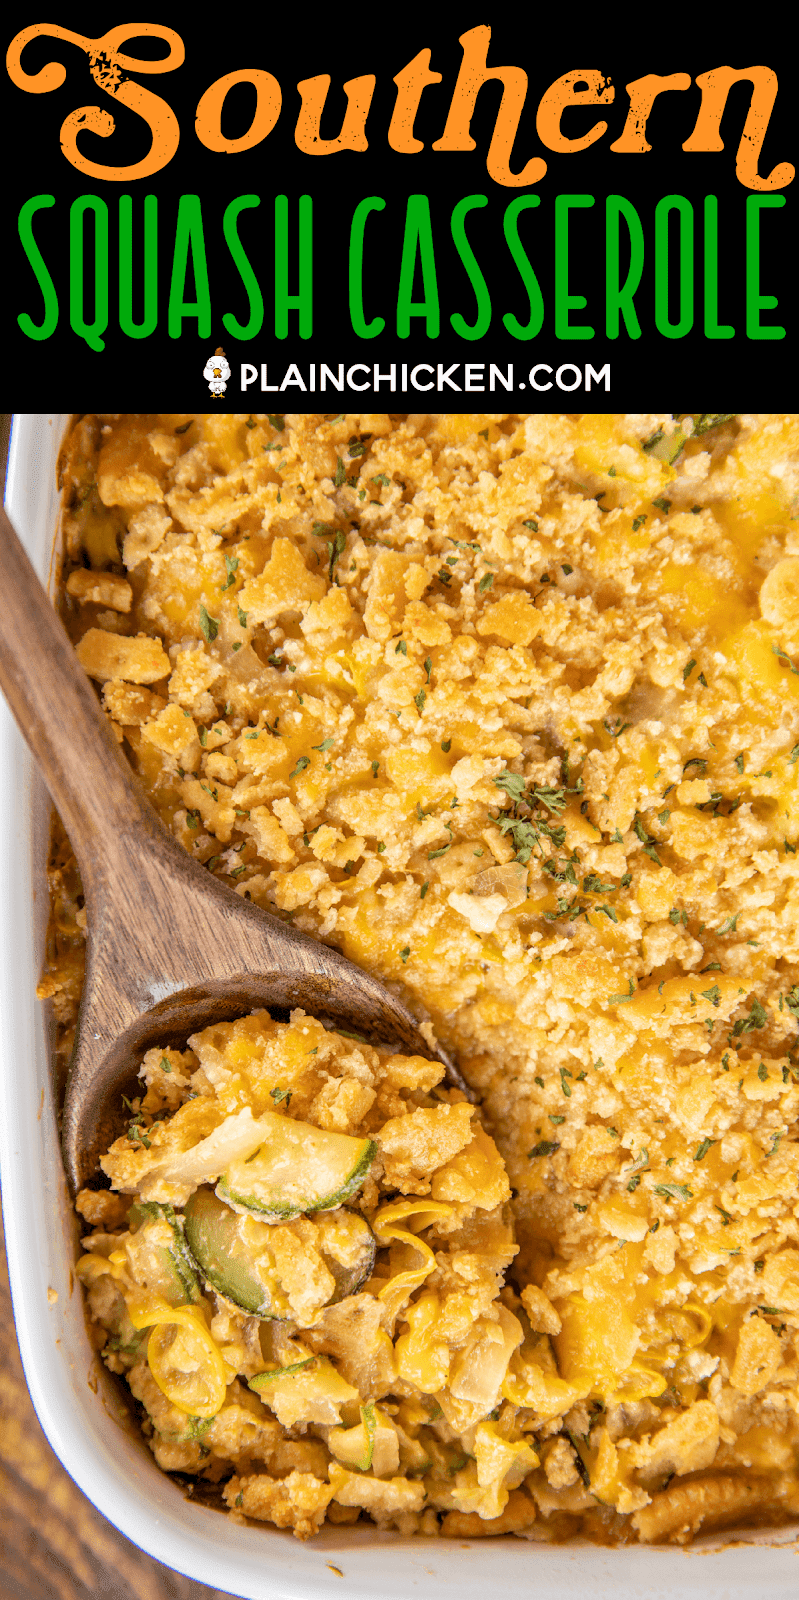 spoon scooping squash casserole from baking dish